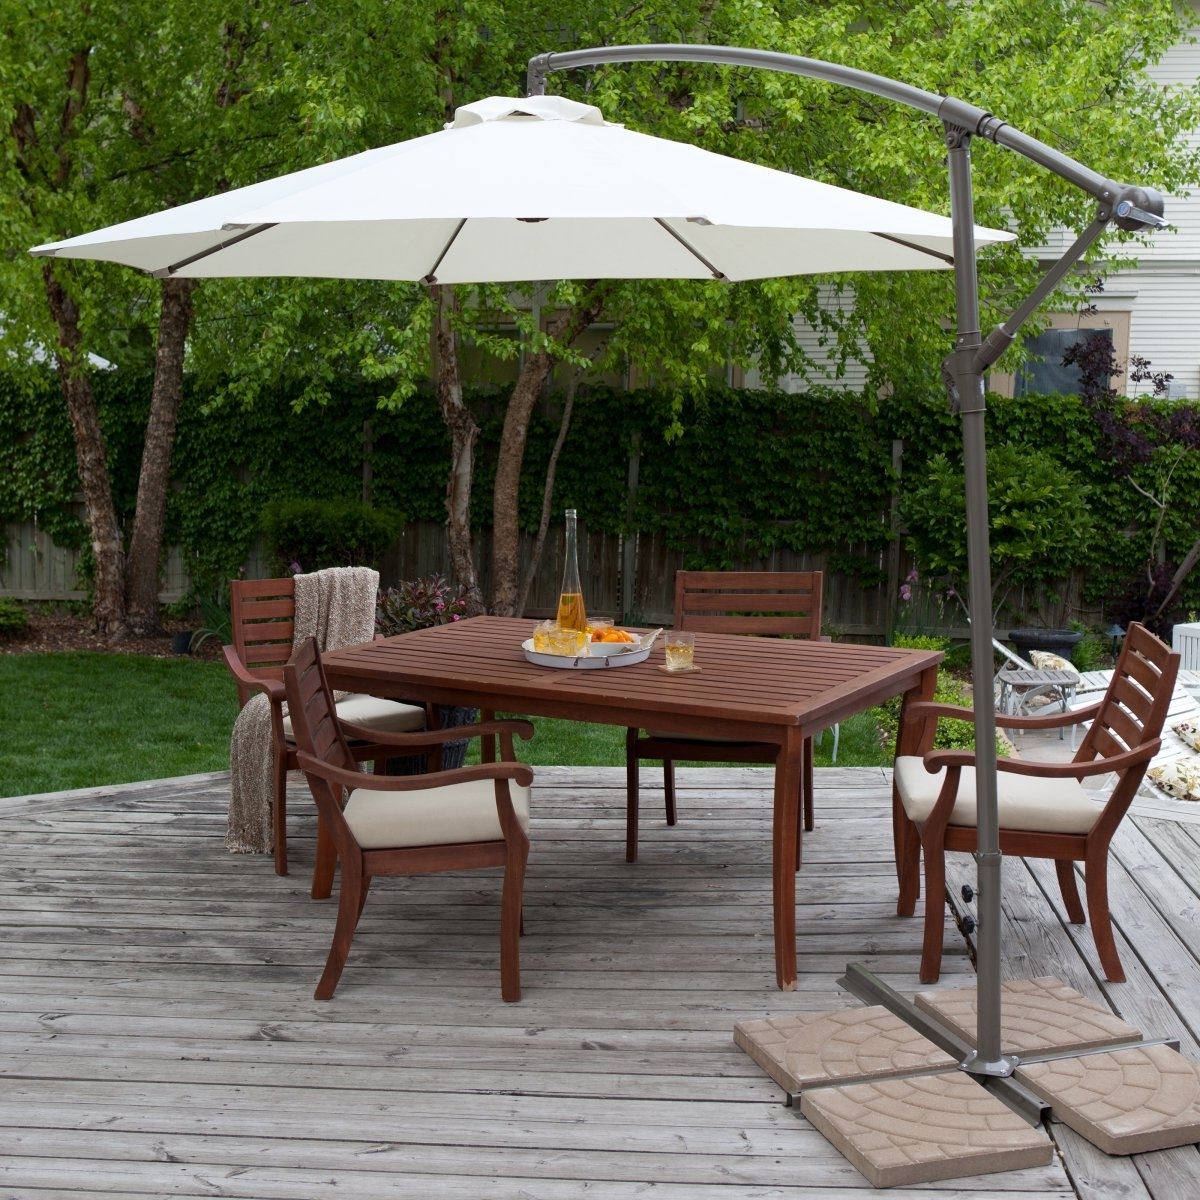 Most Popular The Patio Table Umbrella For Comfort Gathering — Mistikcamping Home With Regard To Patio Umbrellas For Tables (View 4 of 20)